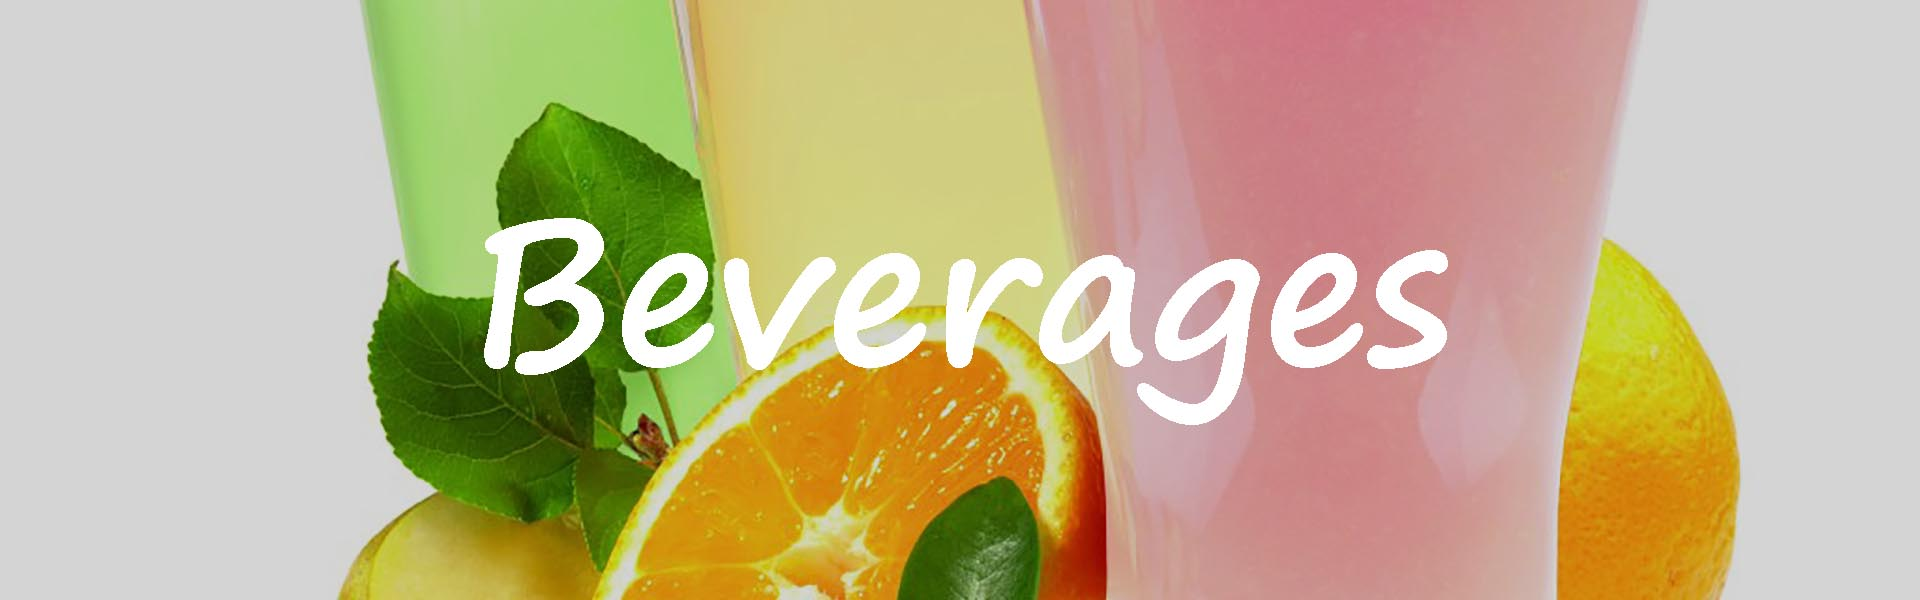 web-ready-beverages-3